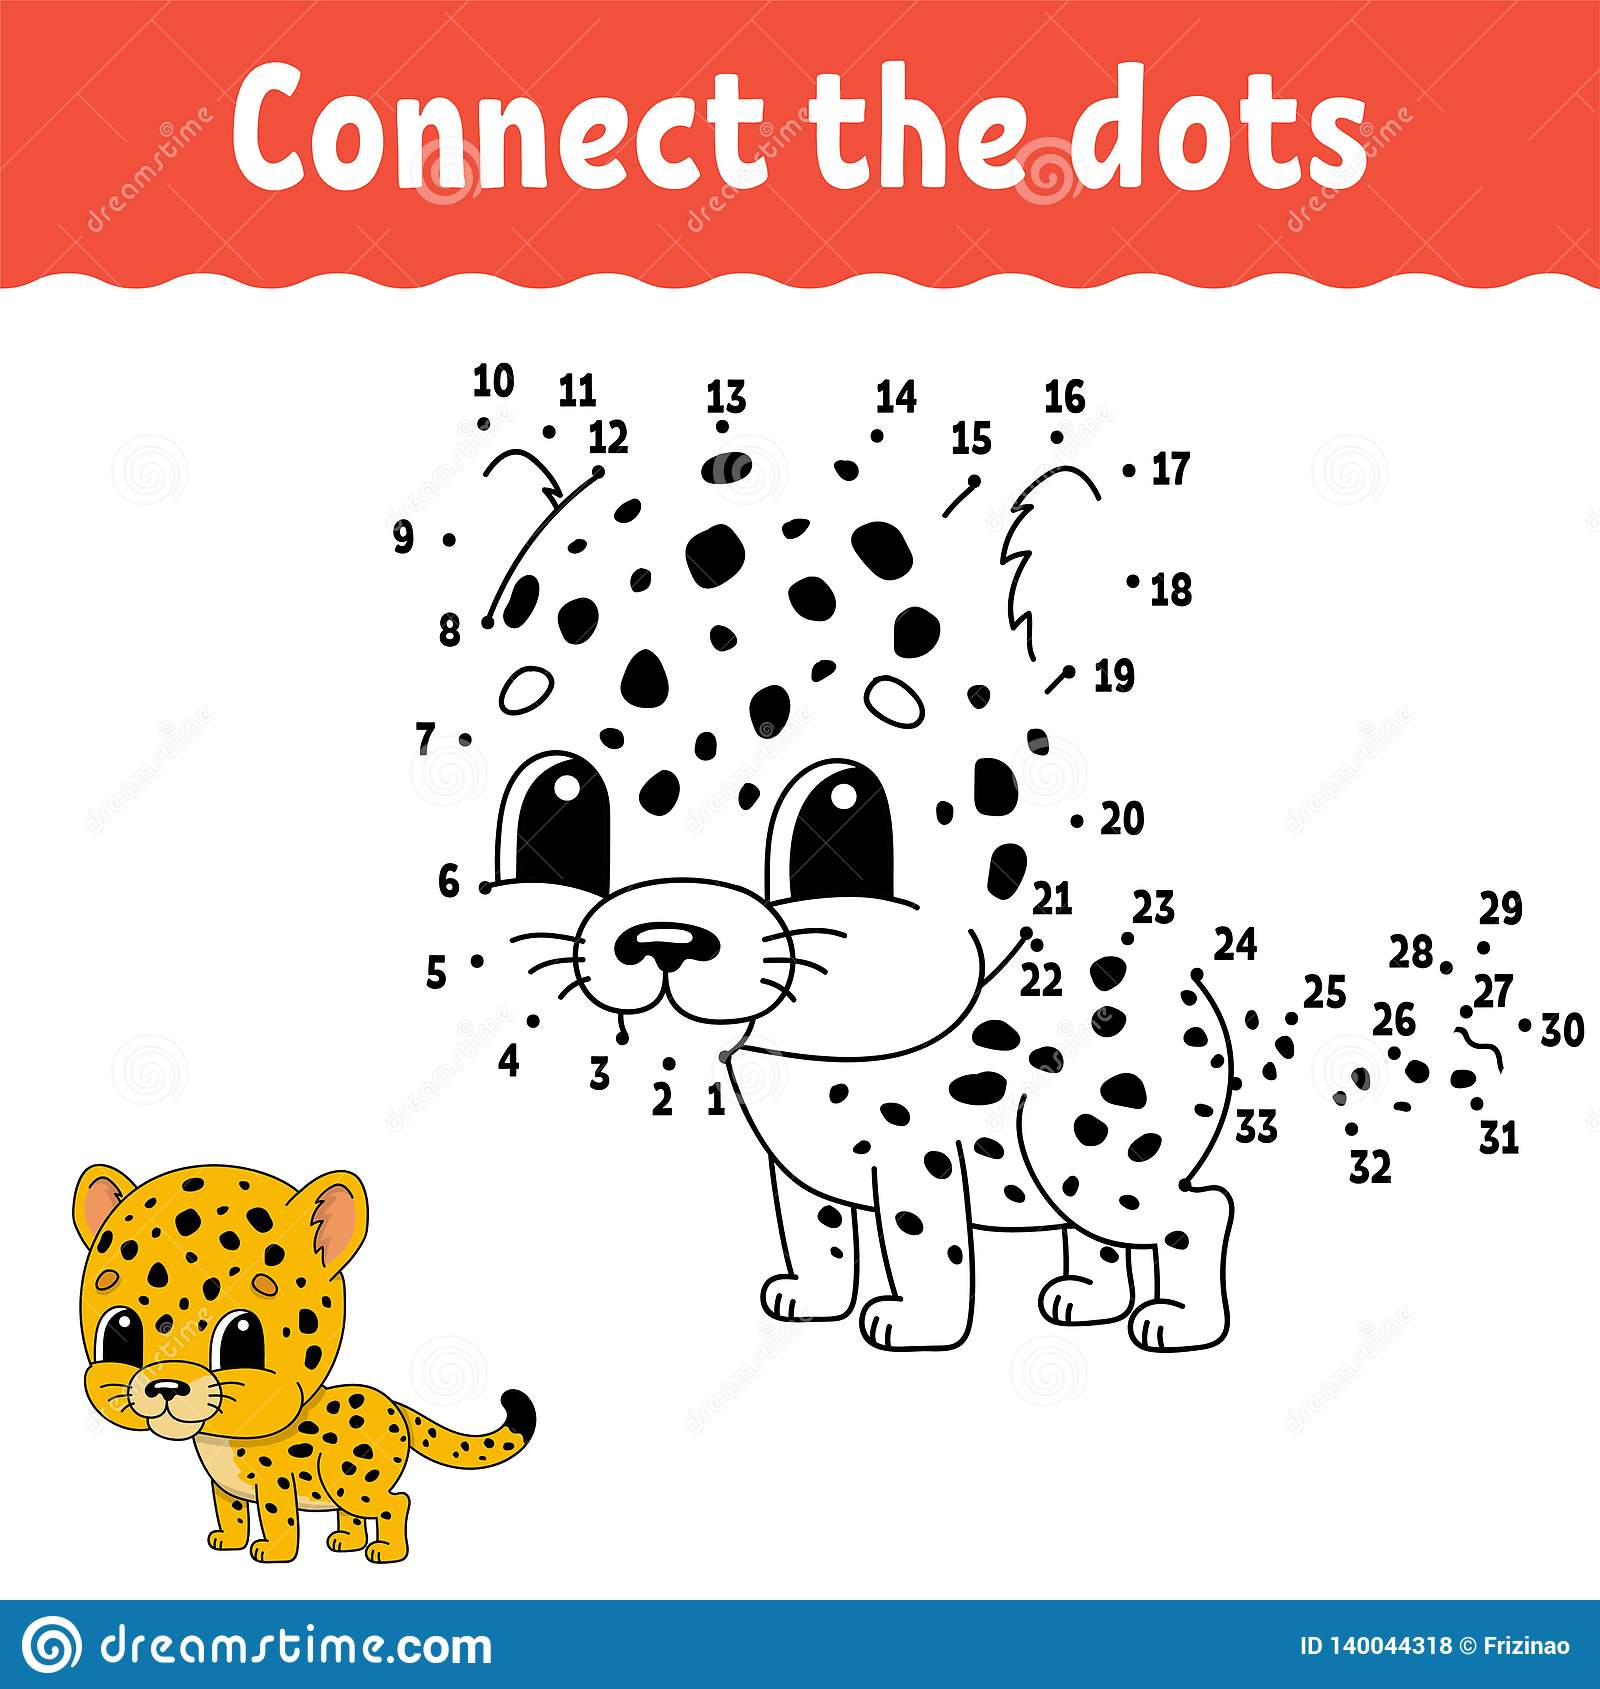 Dot To Dot Draw A Line Handwriting Practice Learning Numbers For